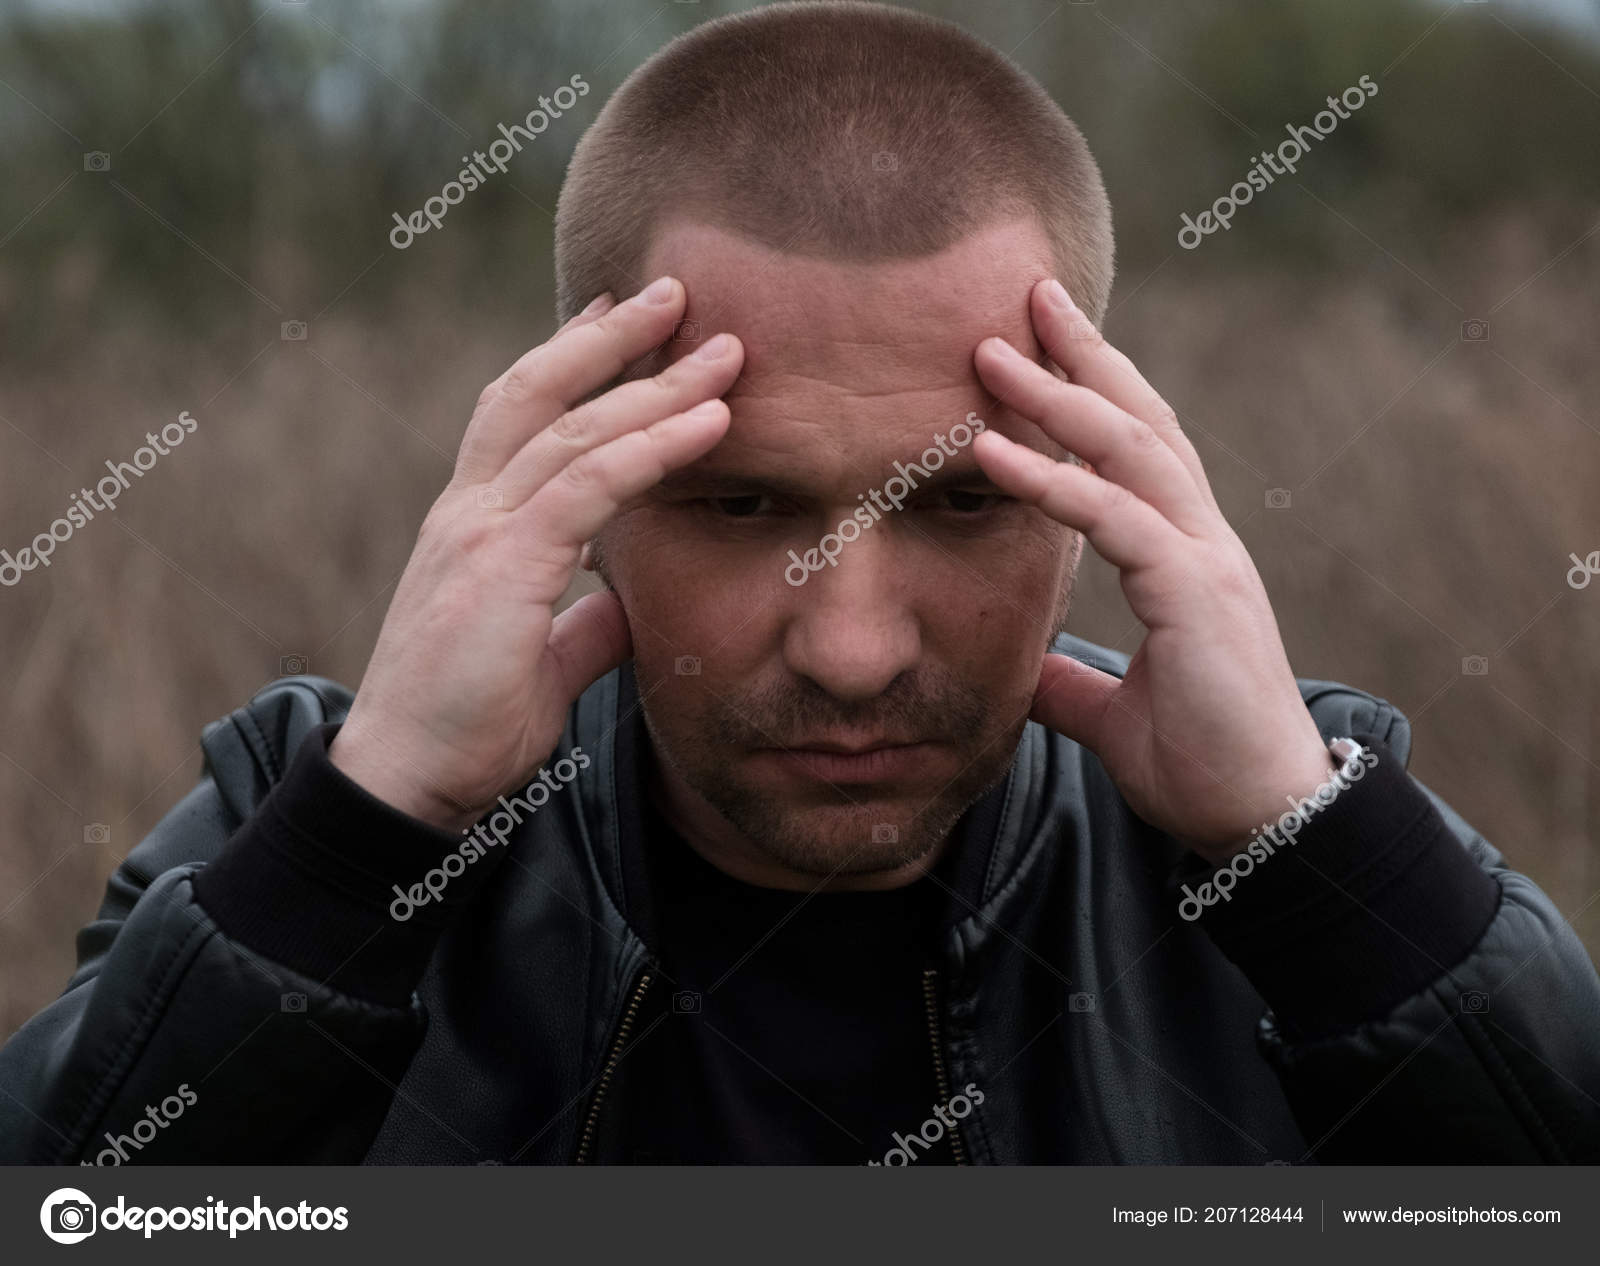 Outdoors Portrait Disappointed Man Black Leather Jacket Guy Holding